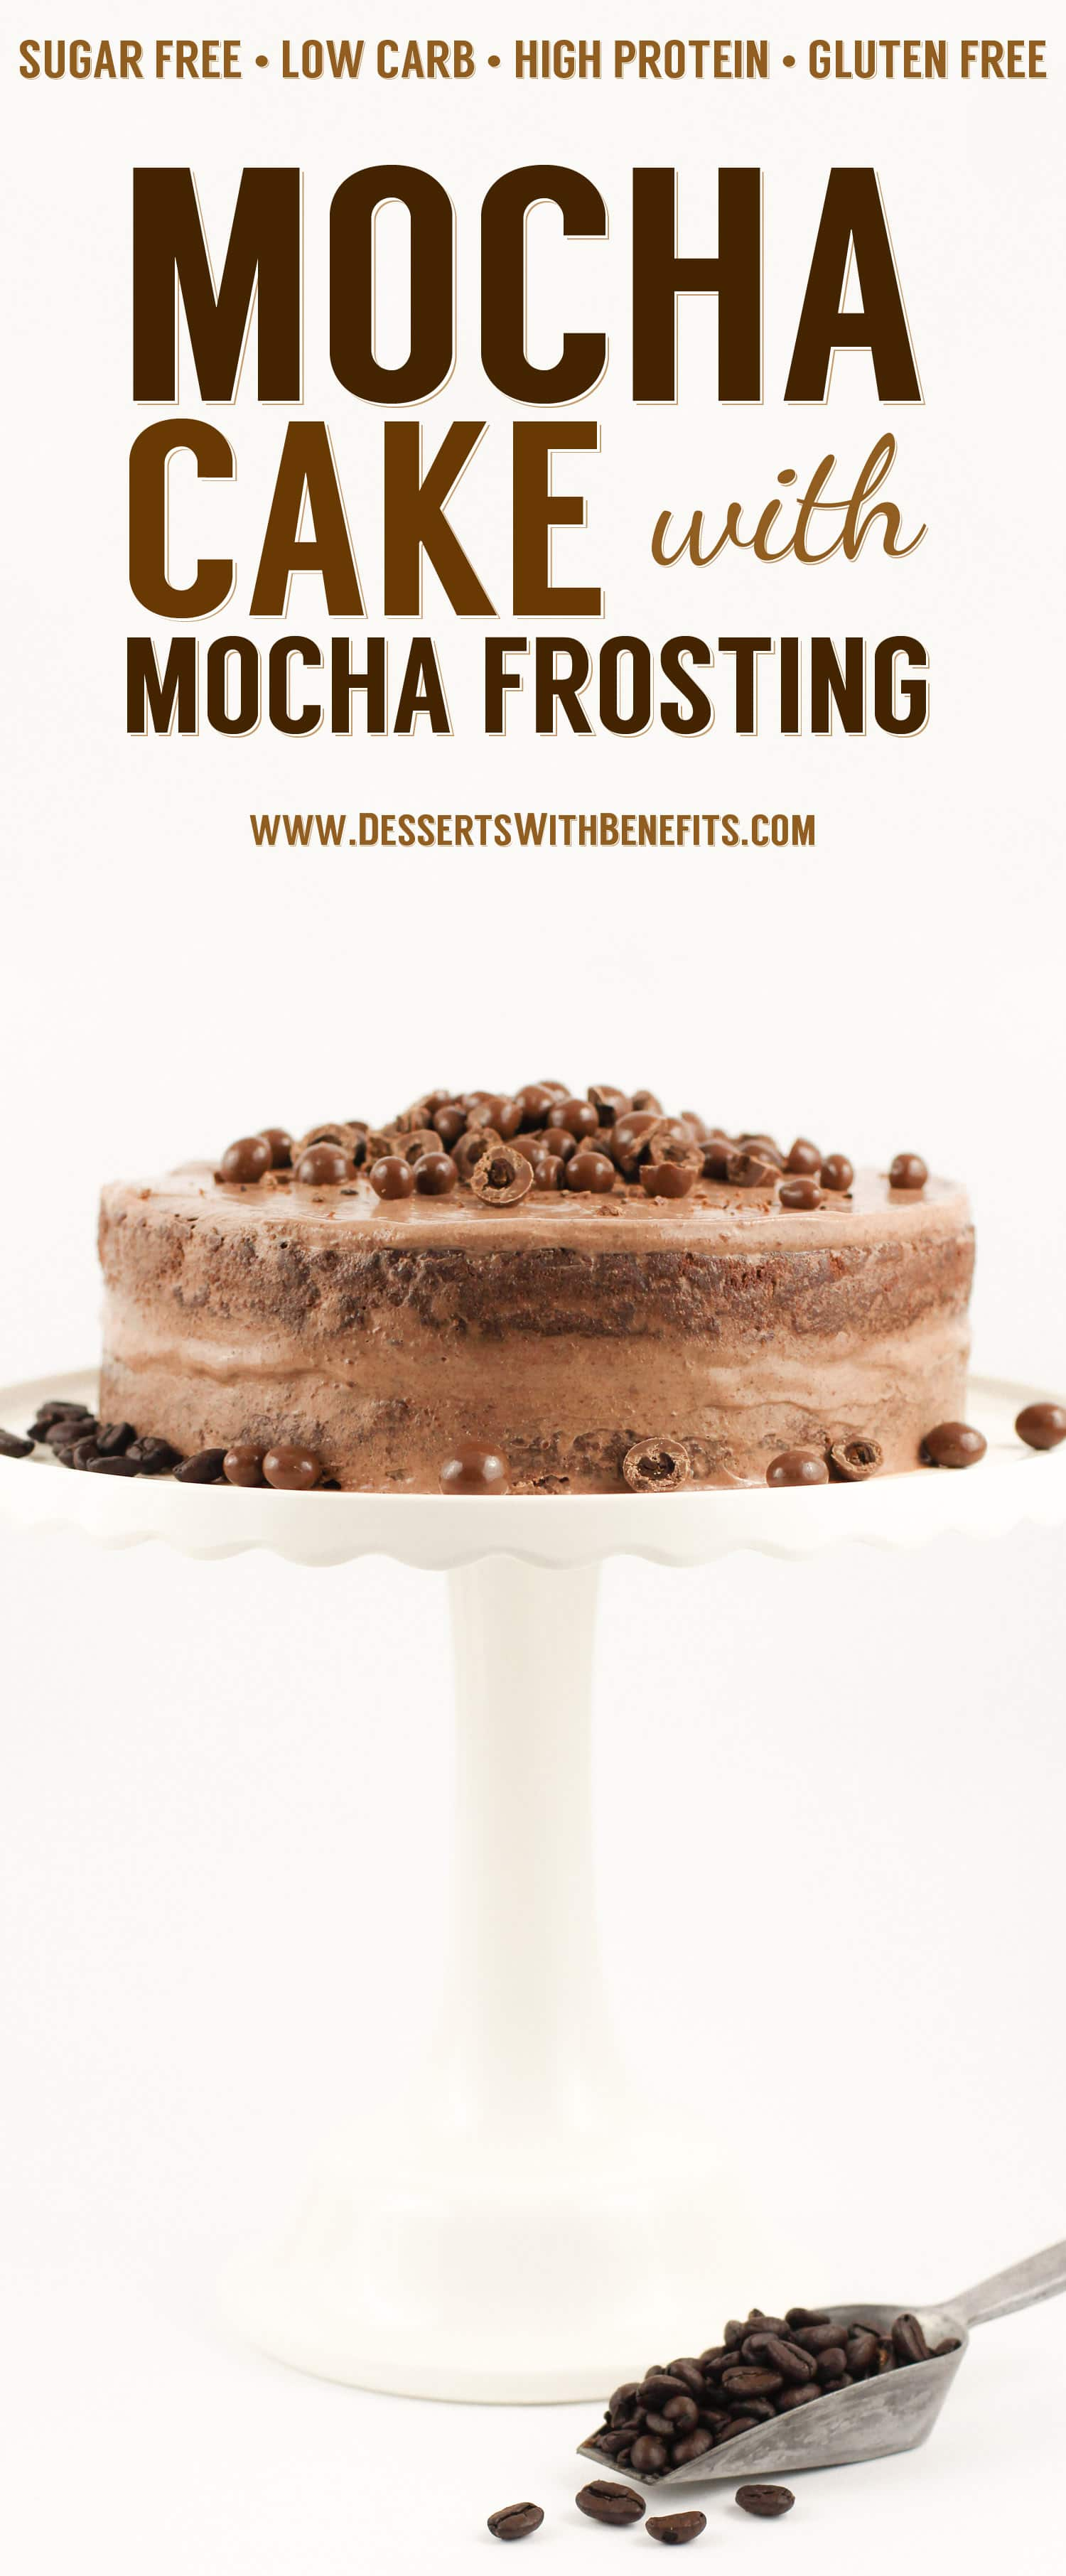 This Mocha Cake with Mocha Frosting is infused with enough coffee and chocolate flavor to make your taste buds fall in love. You get TWICE the coffee flavor in this double whammy mocha dessert. This cake is super fluffy and moist and the frosting is perfectly chocolatey and sweet, you'd never know it's all sugar free, low carb, high protein, and gluten free too!